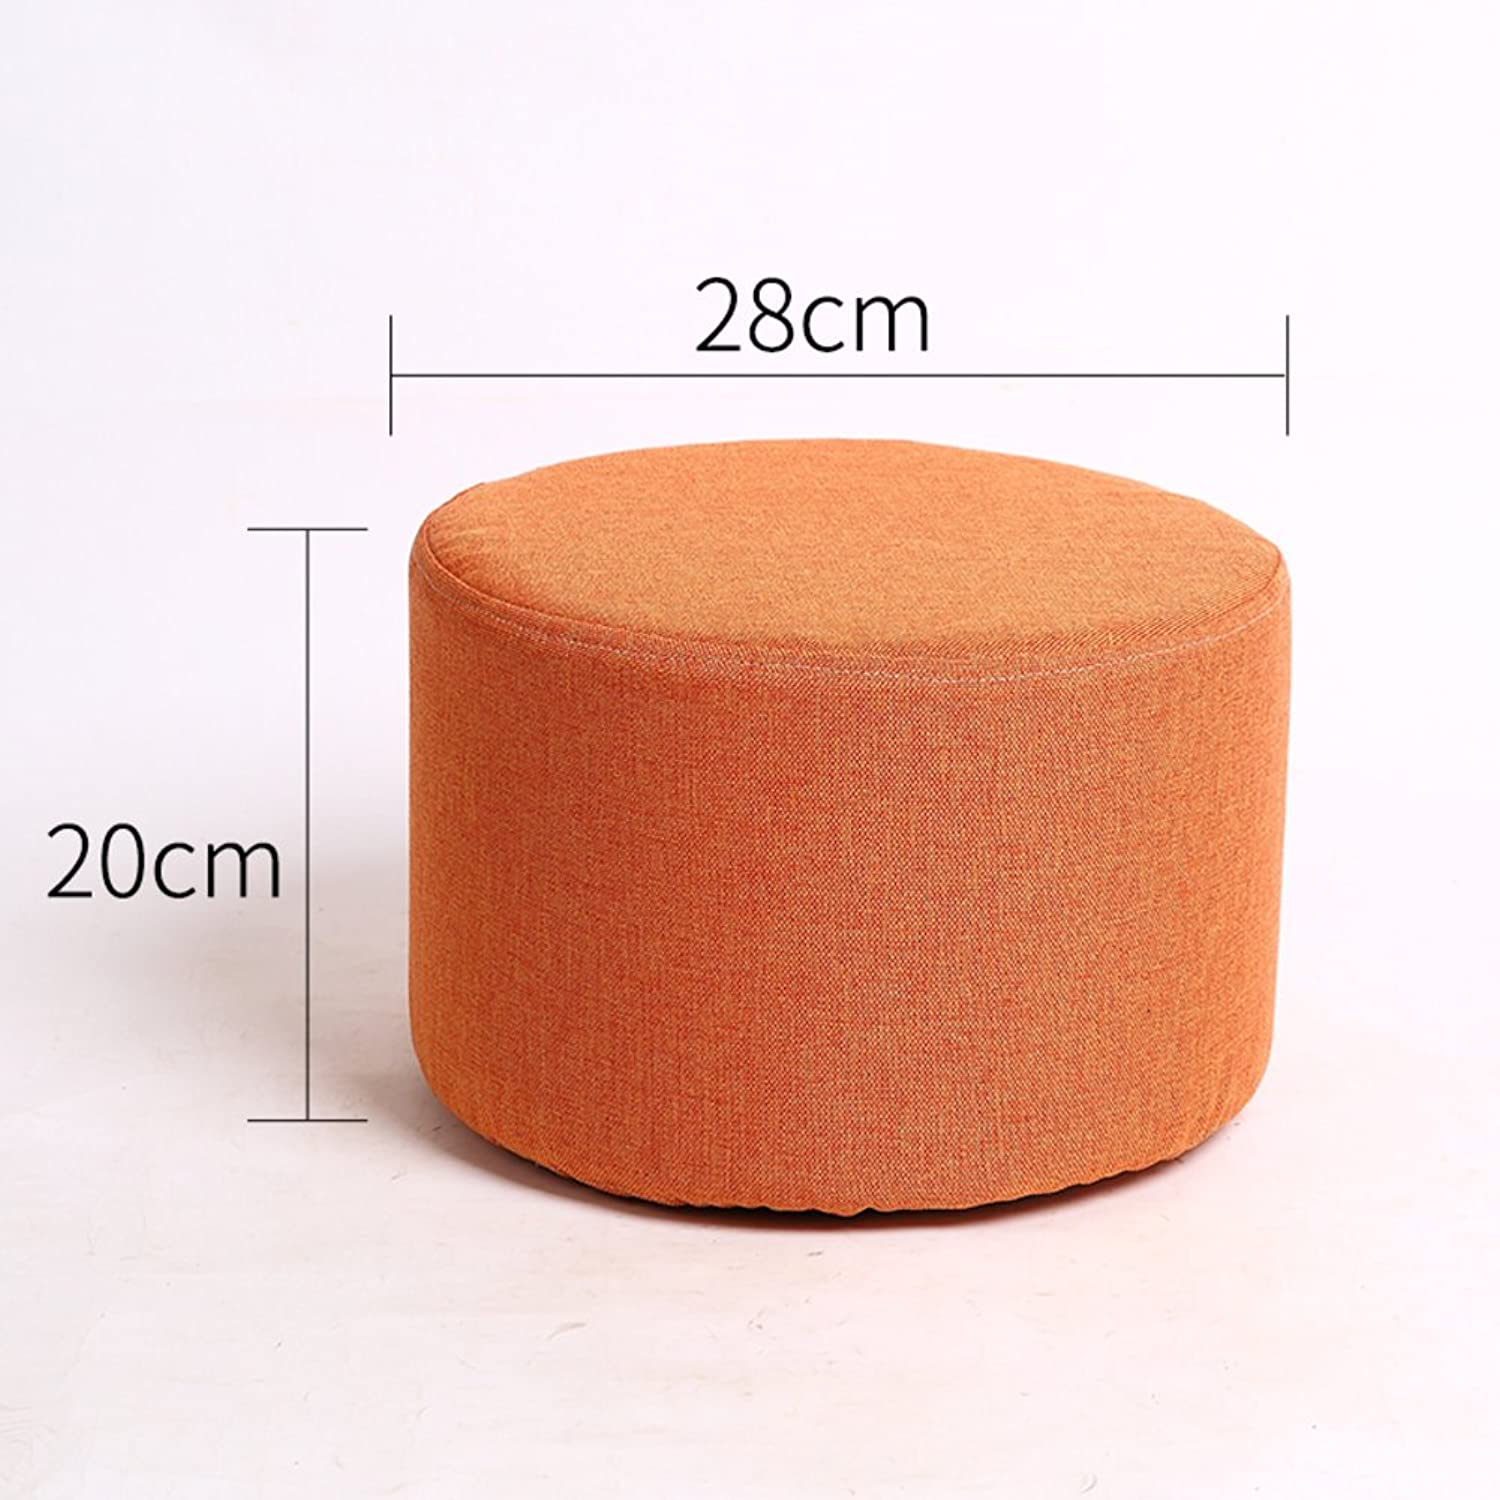 Round Wooden Footstool,Portable Wooden Footstool,Non-Slip Stools Detachable seat Cover Strong Bearing Capacity for Office Living Room Coffee Table-B 28x20cm(11x8inch)